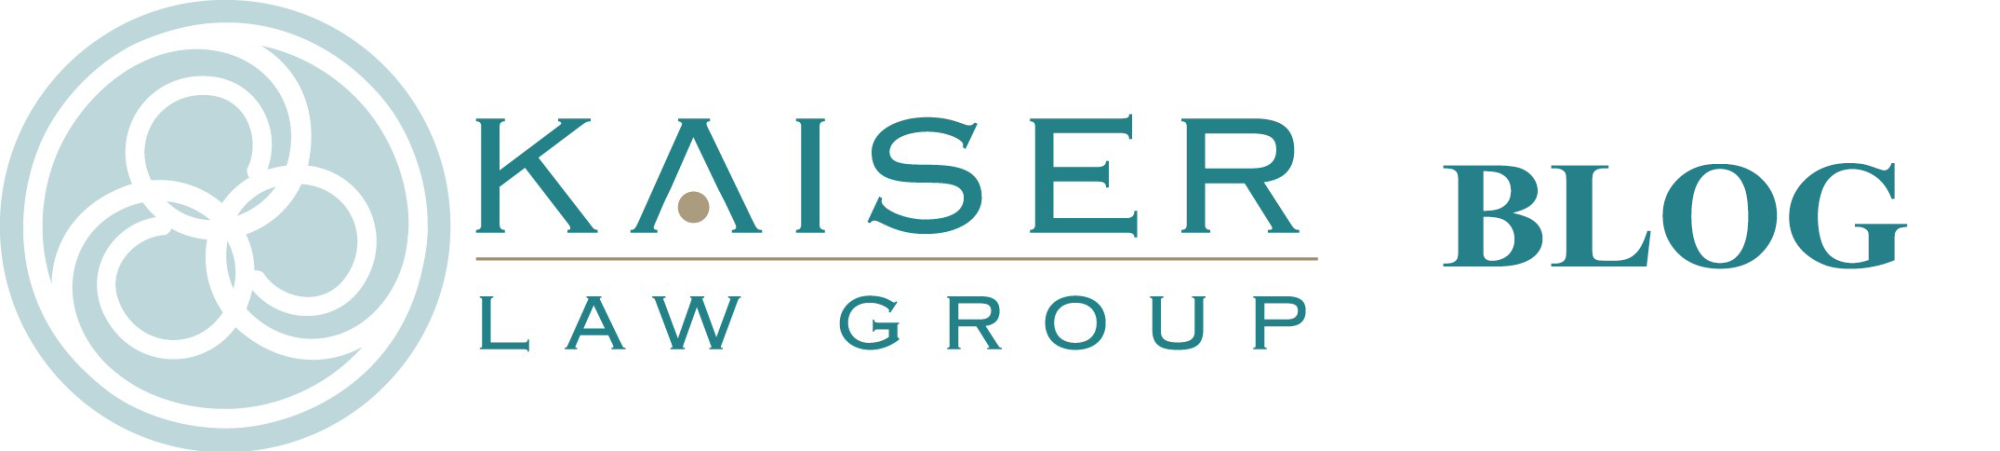 Kaiser Law Group Blog